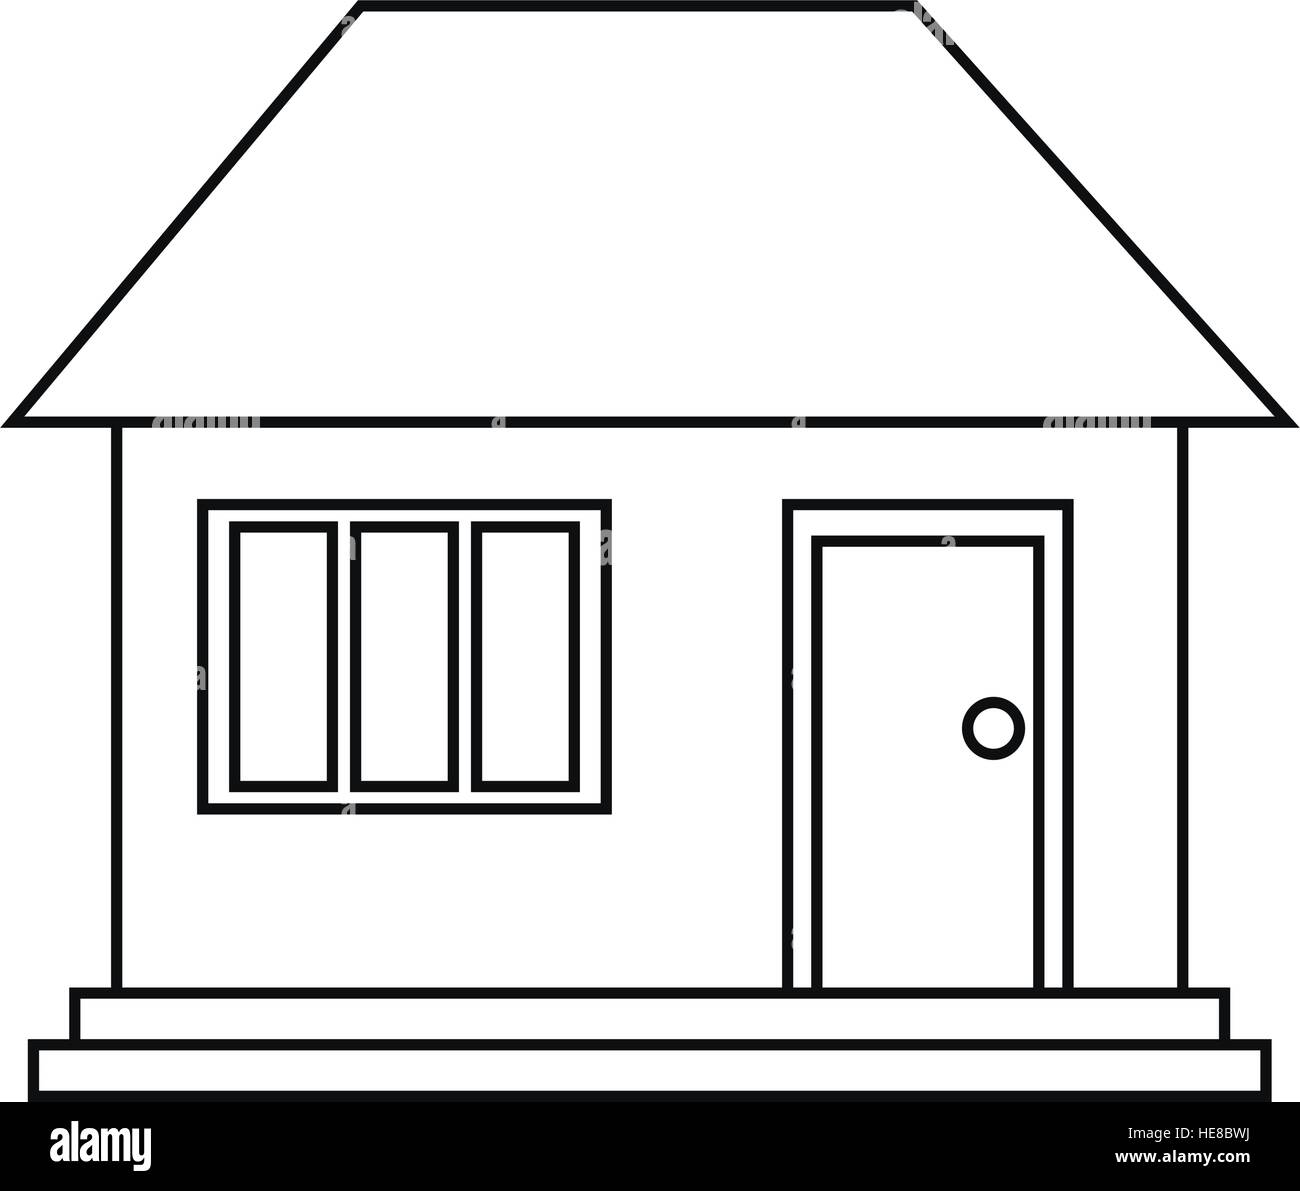 House home family residential outline stock image